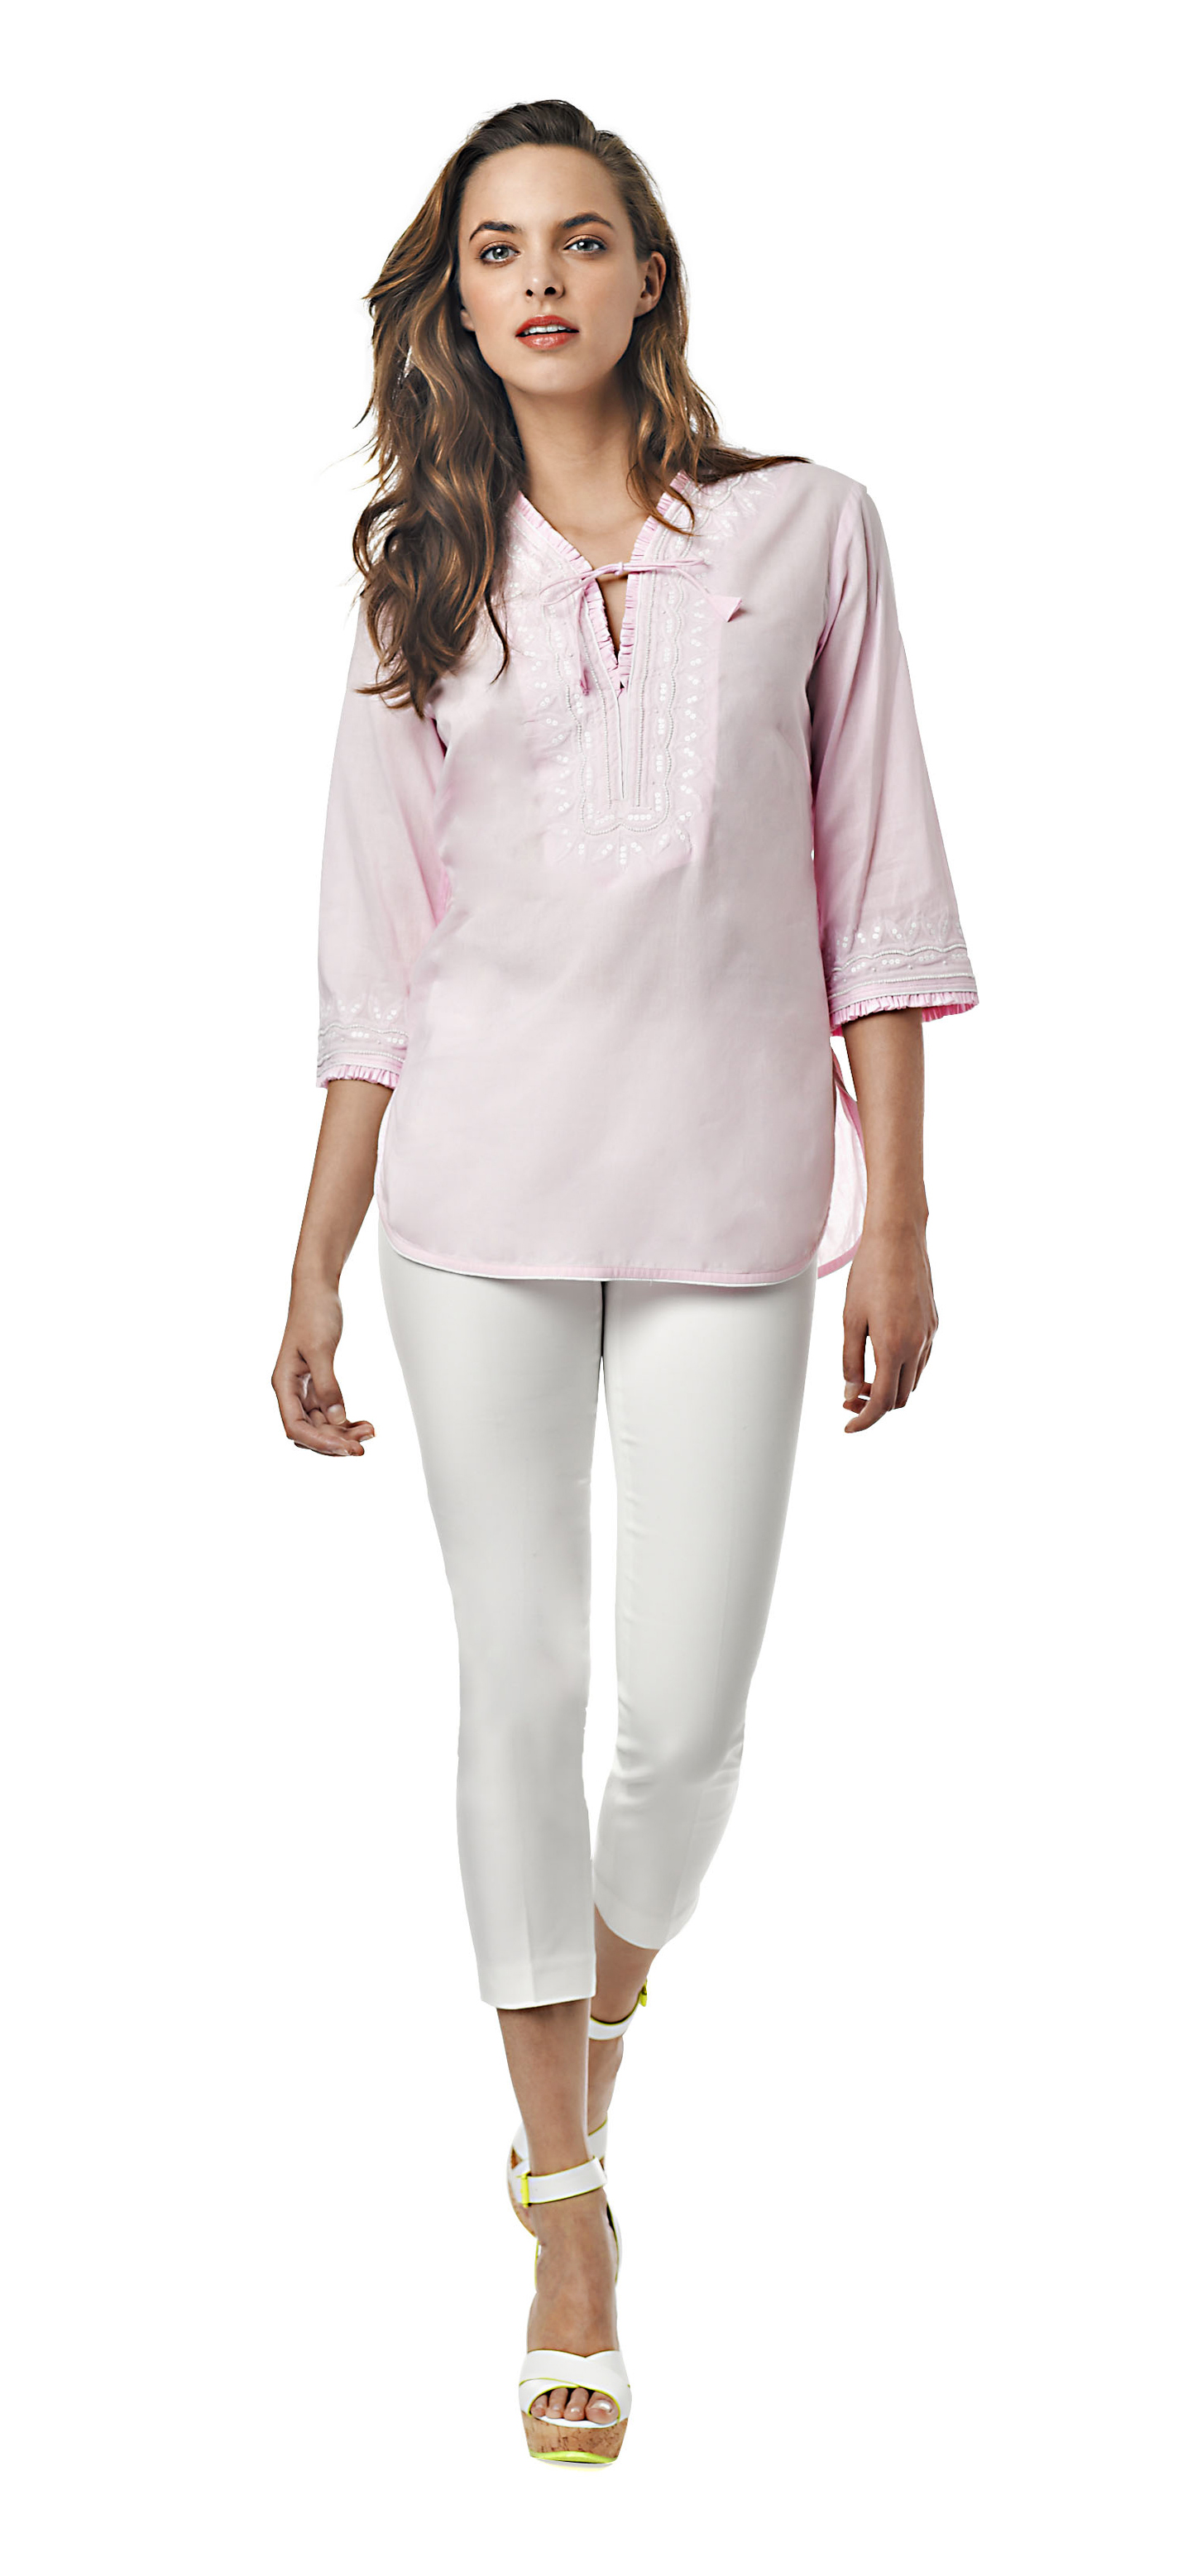 VALENCIA_PINK_FRONT